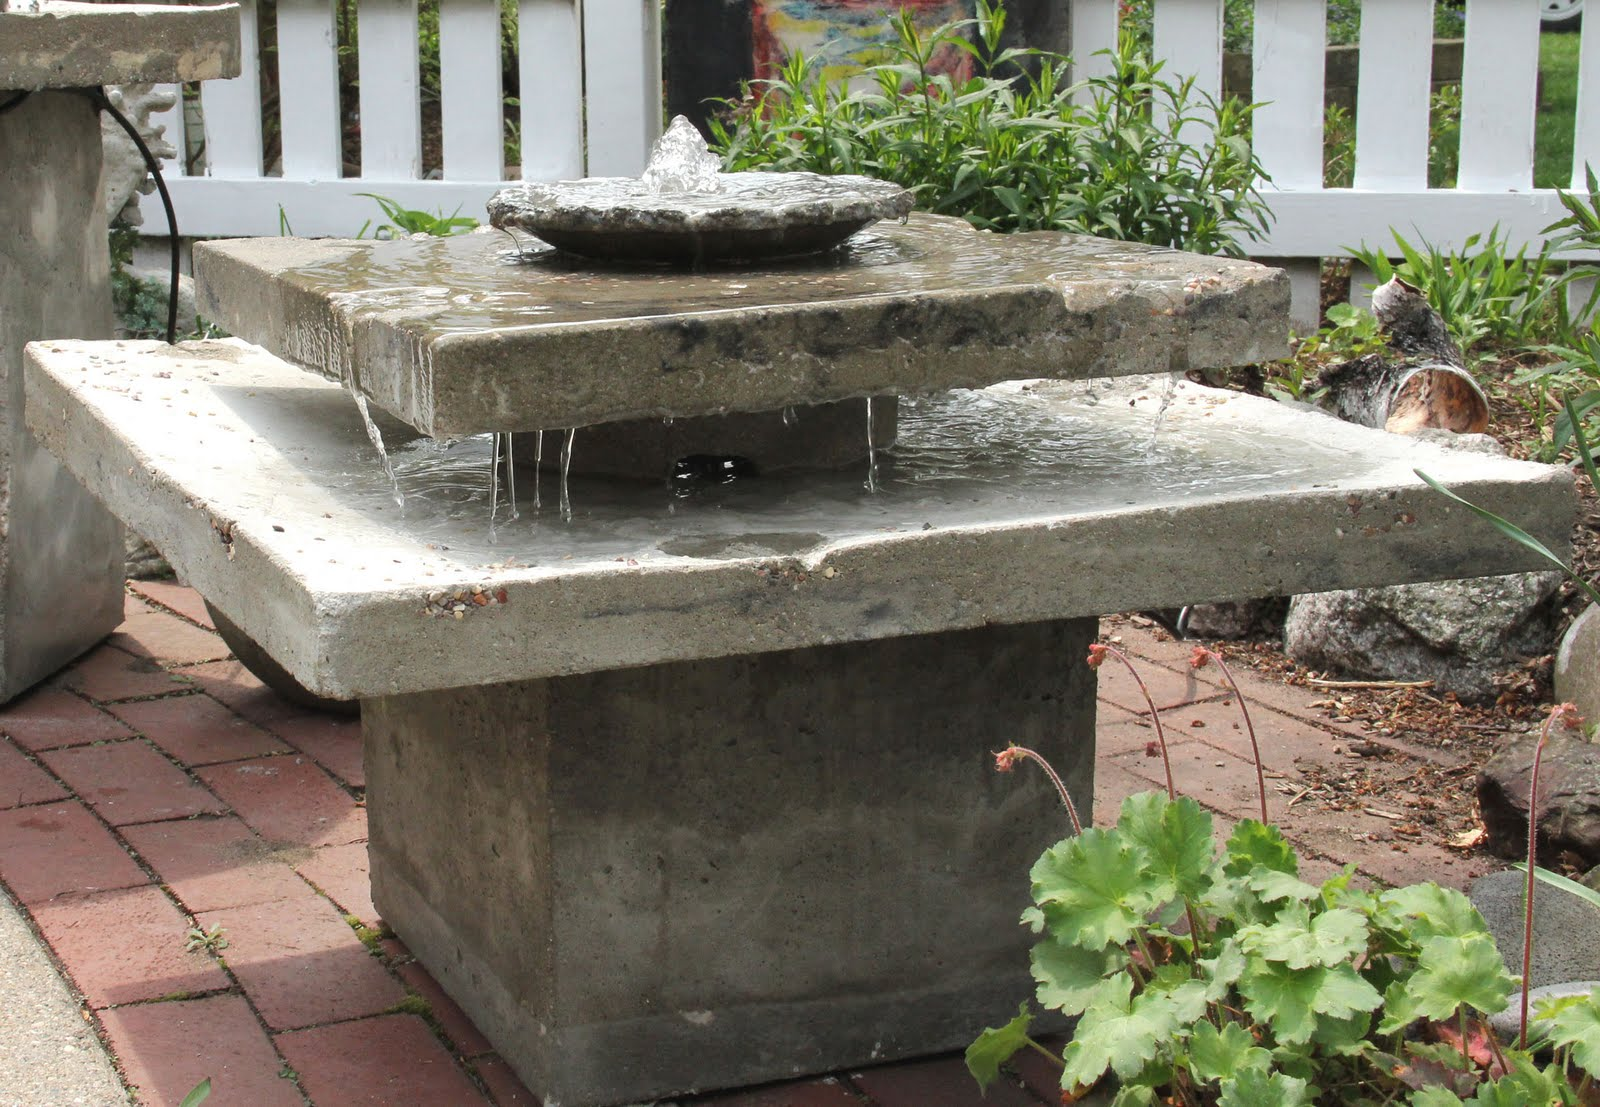 art studio: Two new concrete fountains on the move today!!!